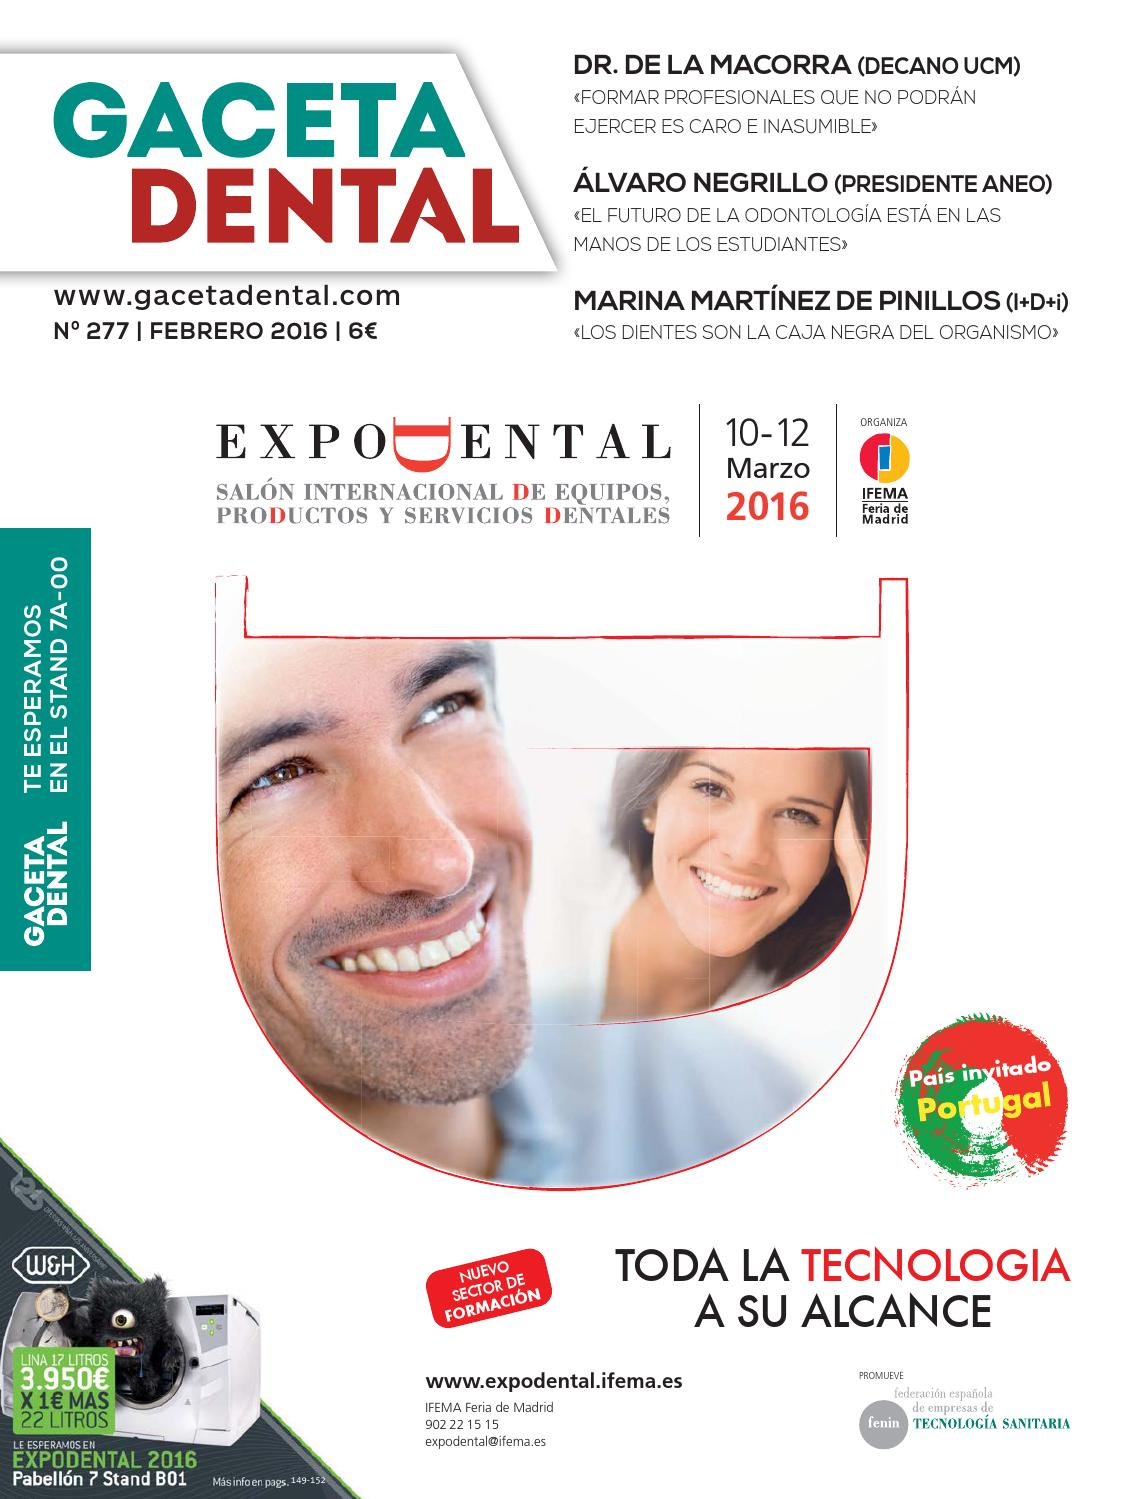 agenesia dental de oriente medio